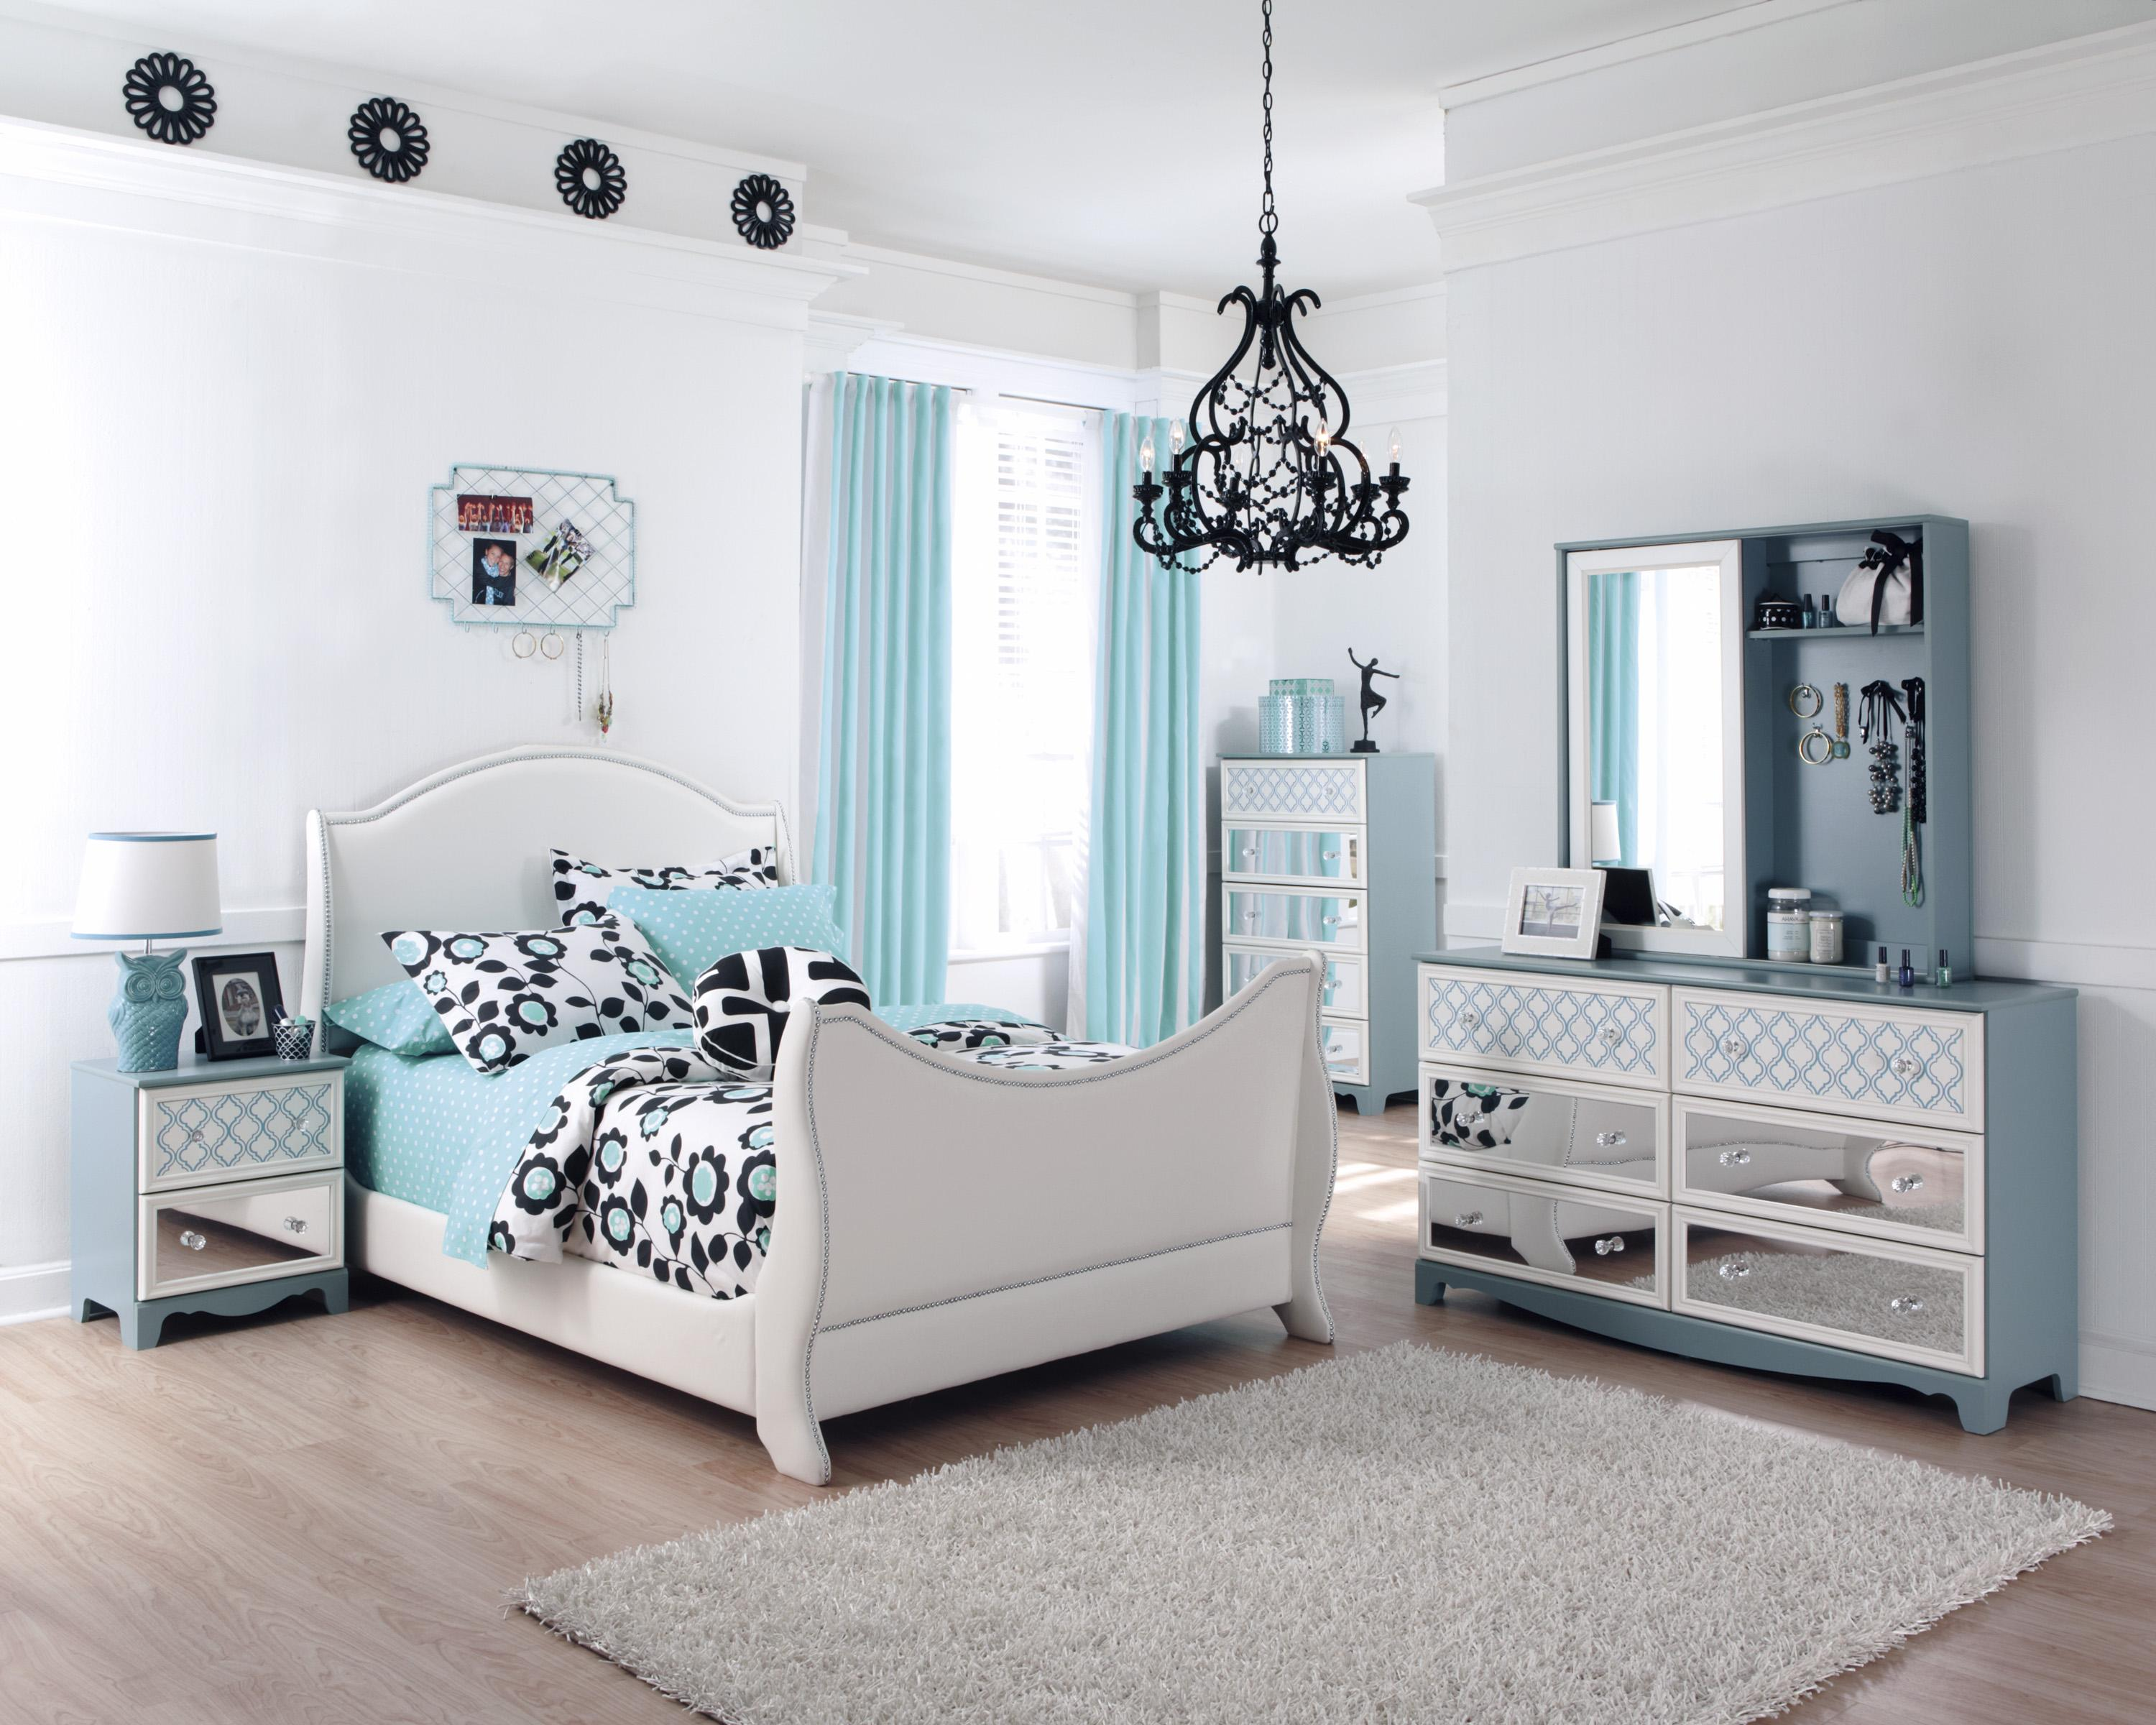 breathtaking white paint wooden furniture teenagers bedroom colorful paint sets for youth bedrooms fascinating teen bedroom decorating ideas with light